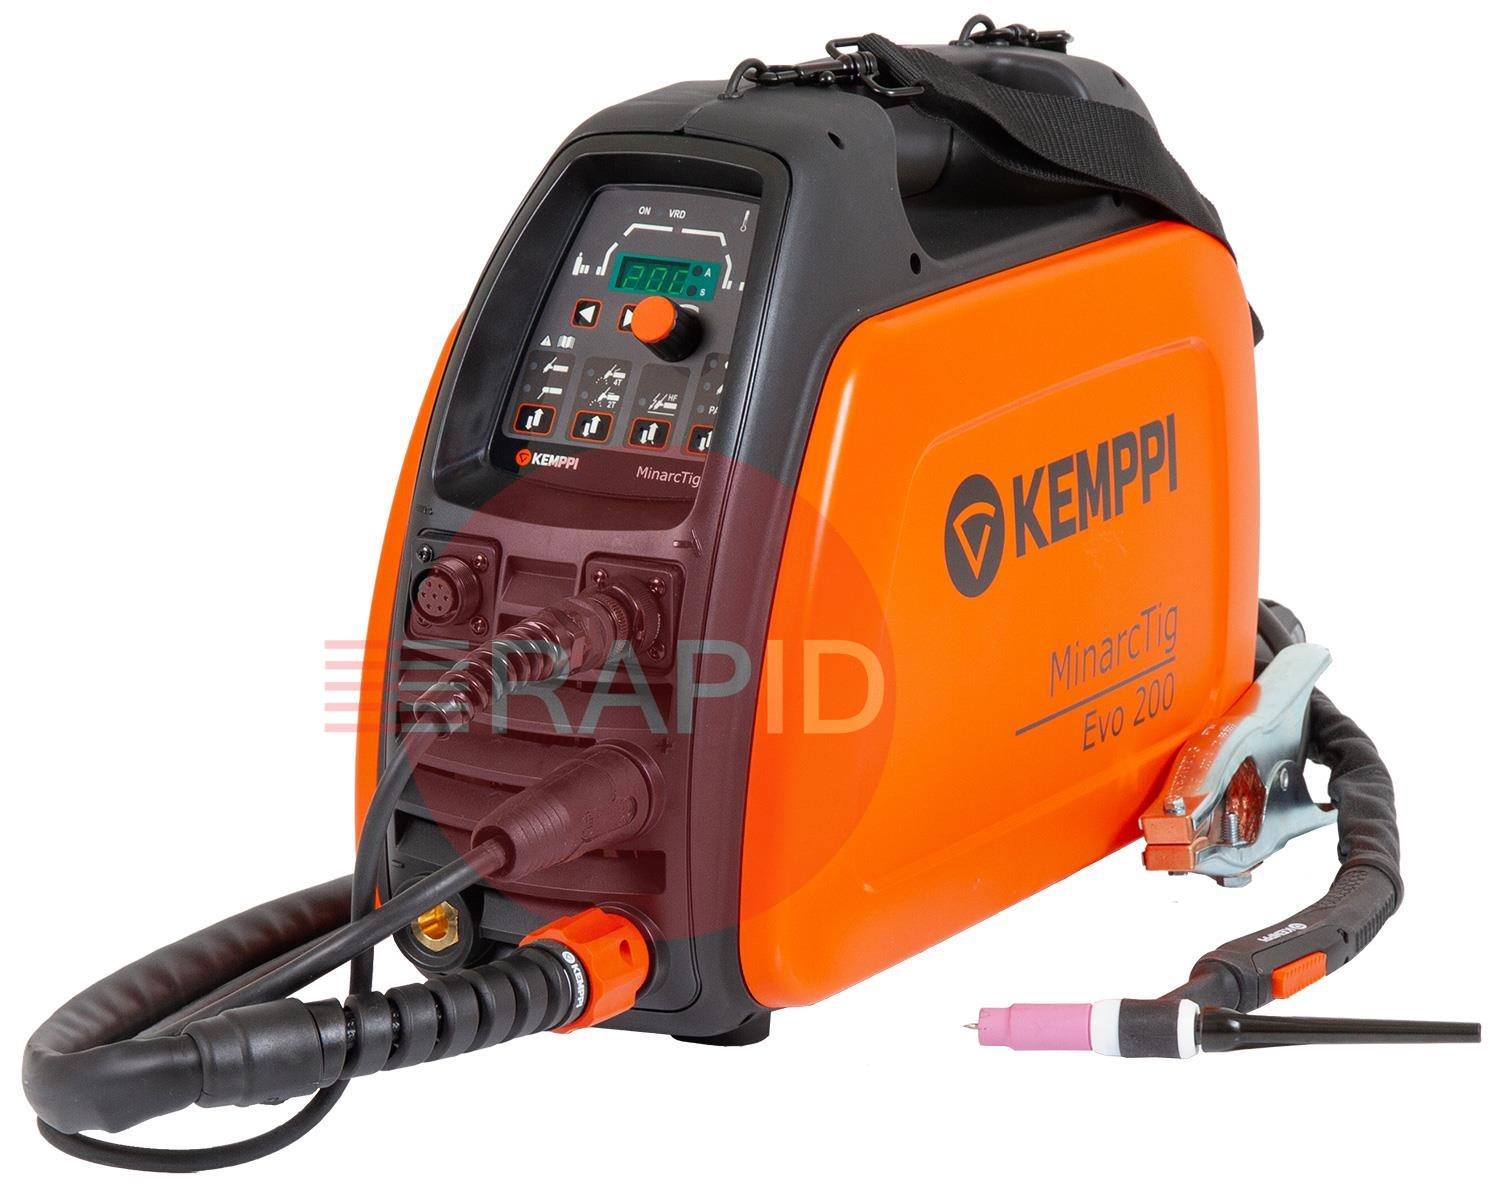 Minarctig200Evo  Kemppi MinarcTig Evo 200 Ready to Weld Package, includes Tig Torch & Earth Cable - 230v, CE